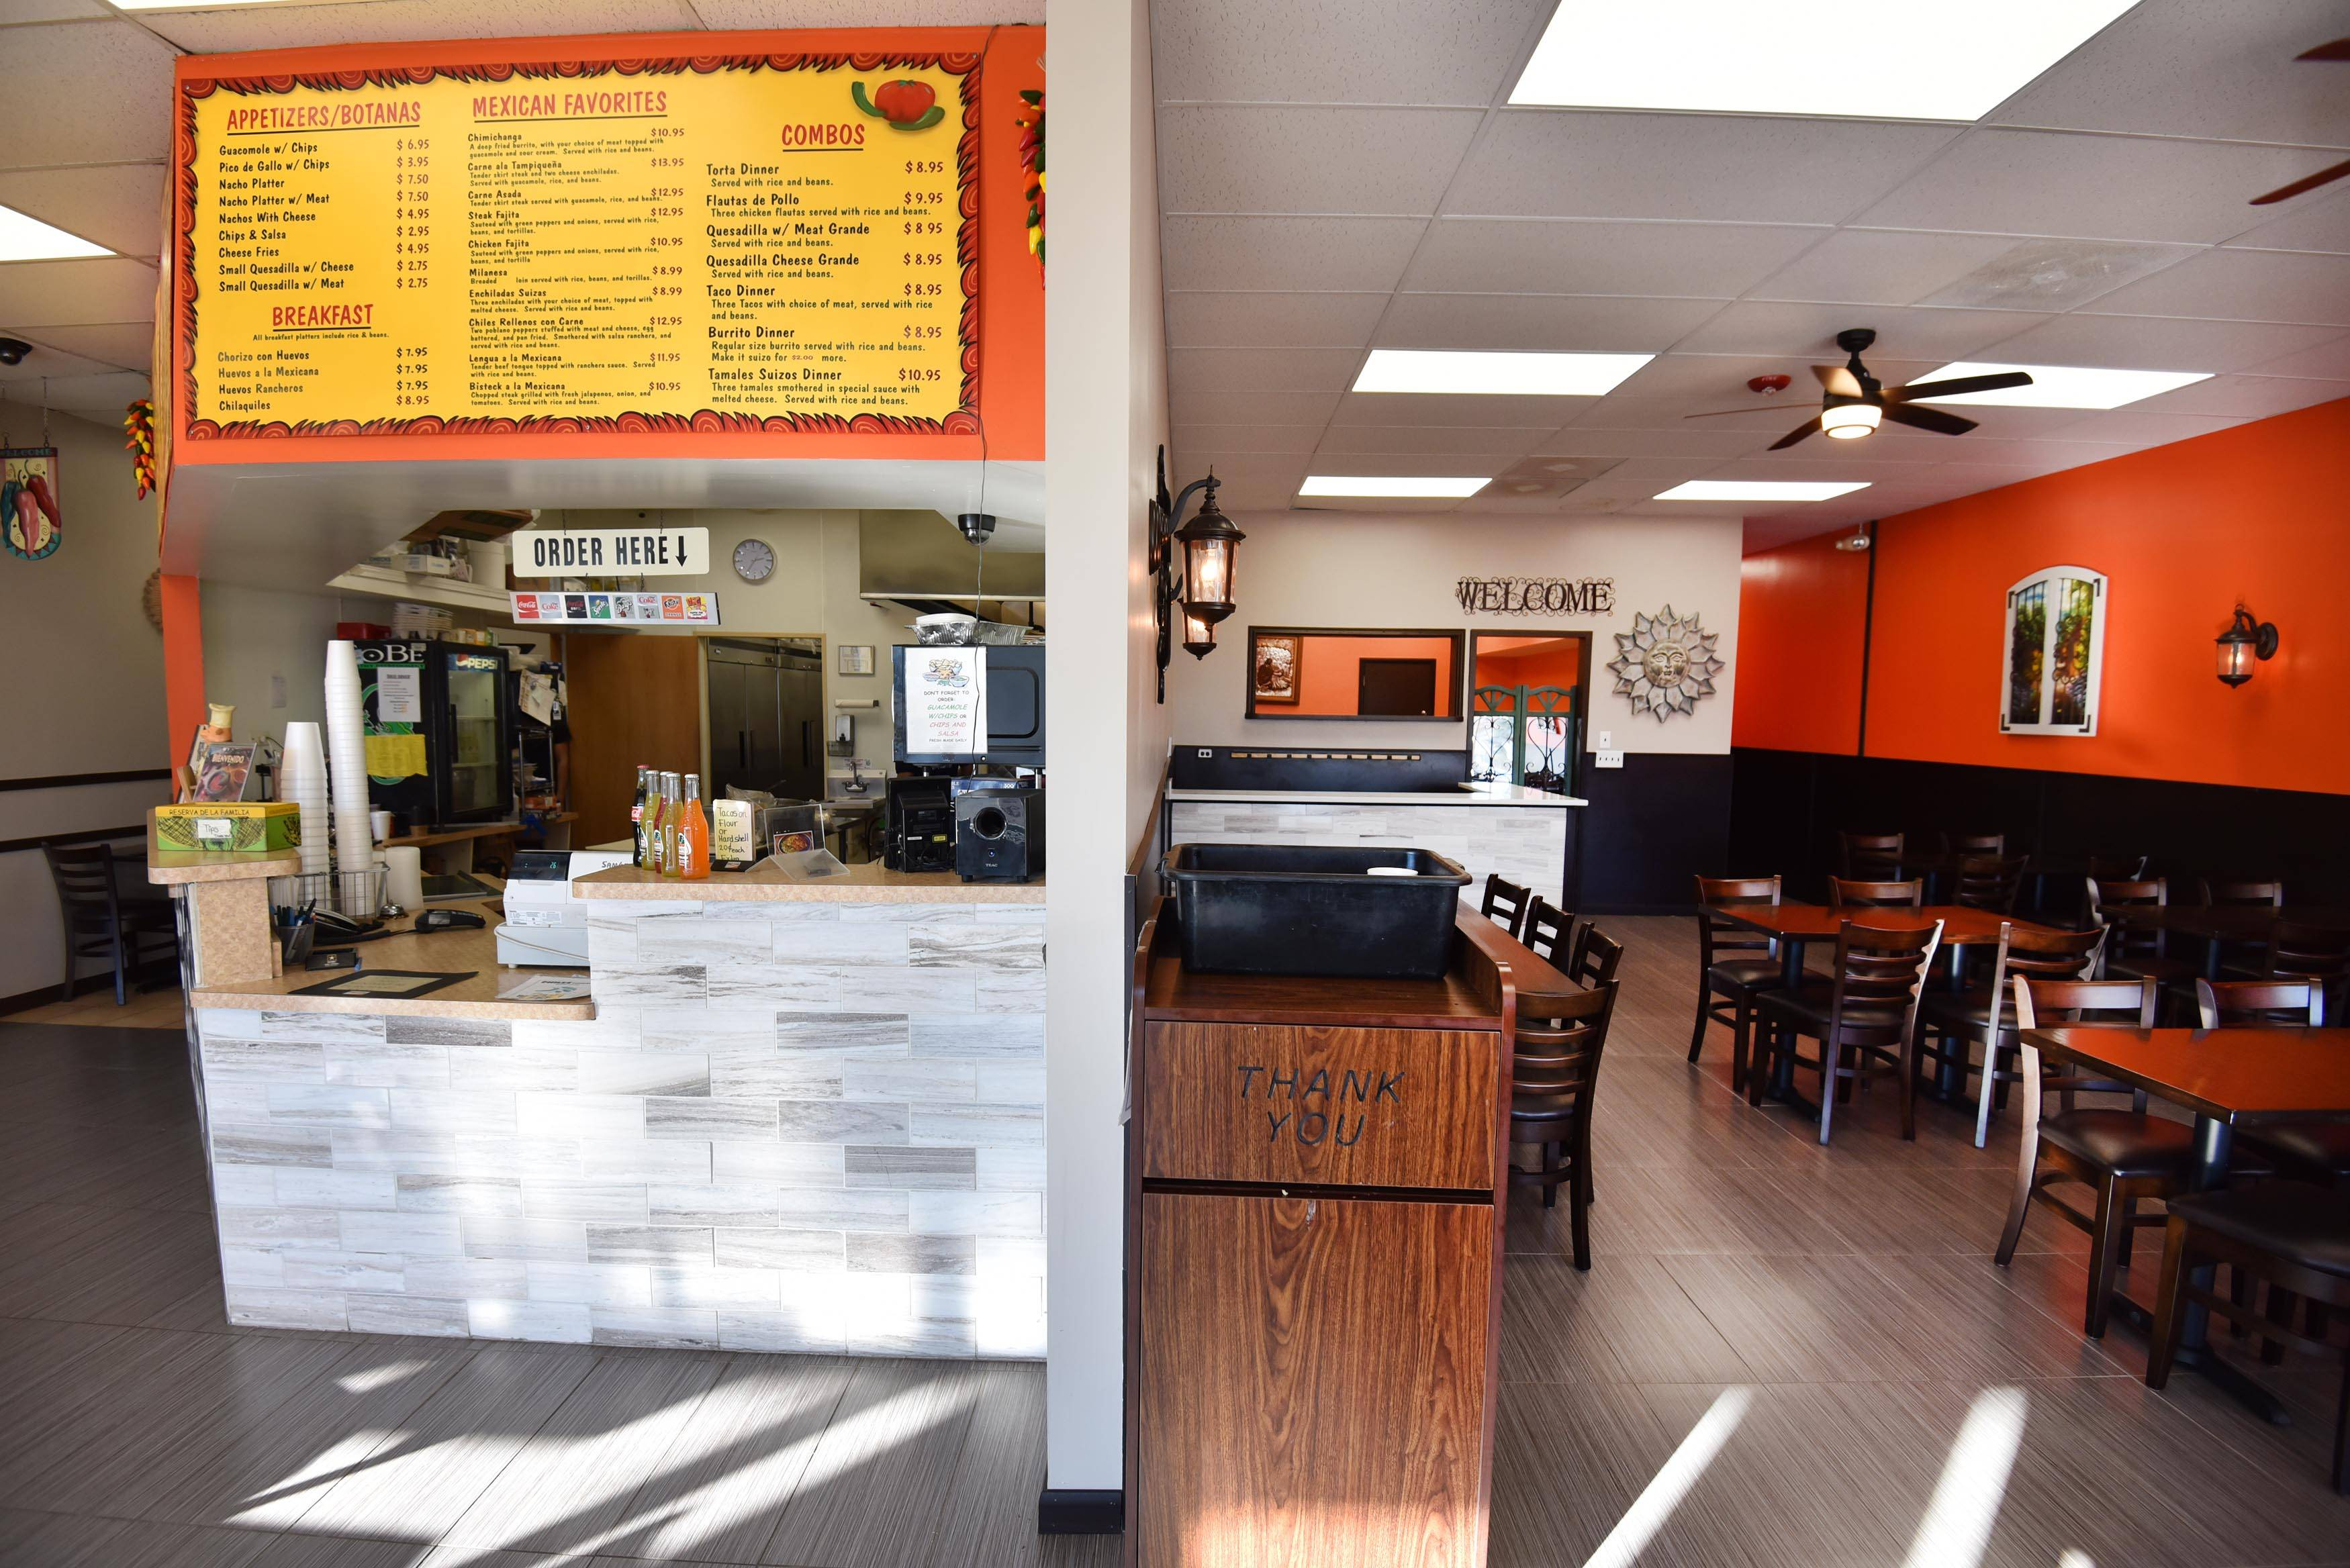 John Starks/jstarks@dailyherald.com Sergio's Fresh Mexican Grill in Lake Zurich has expanded to seat 60. Owner Sergio Briseno is also working on adding a private party room that can seat 20.